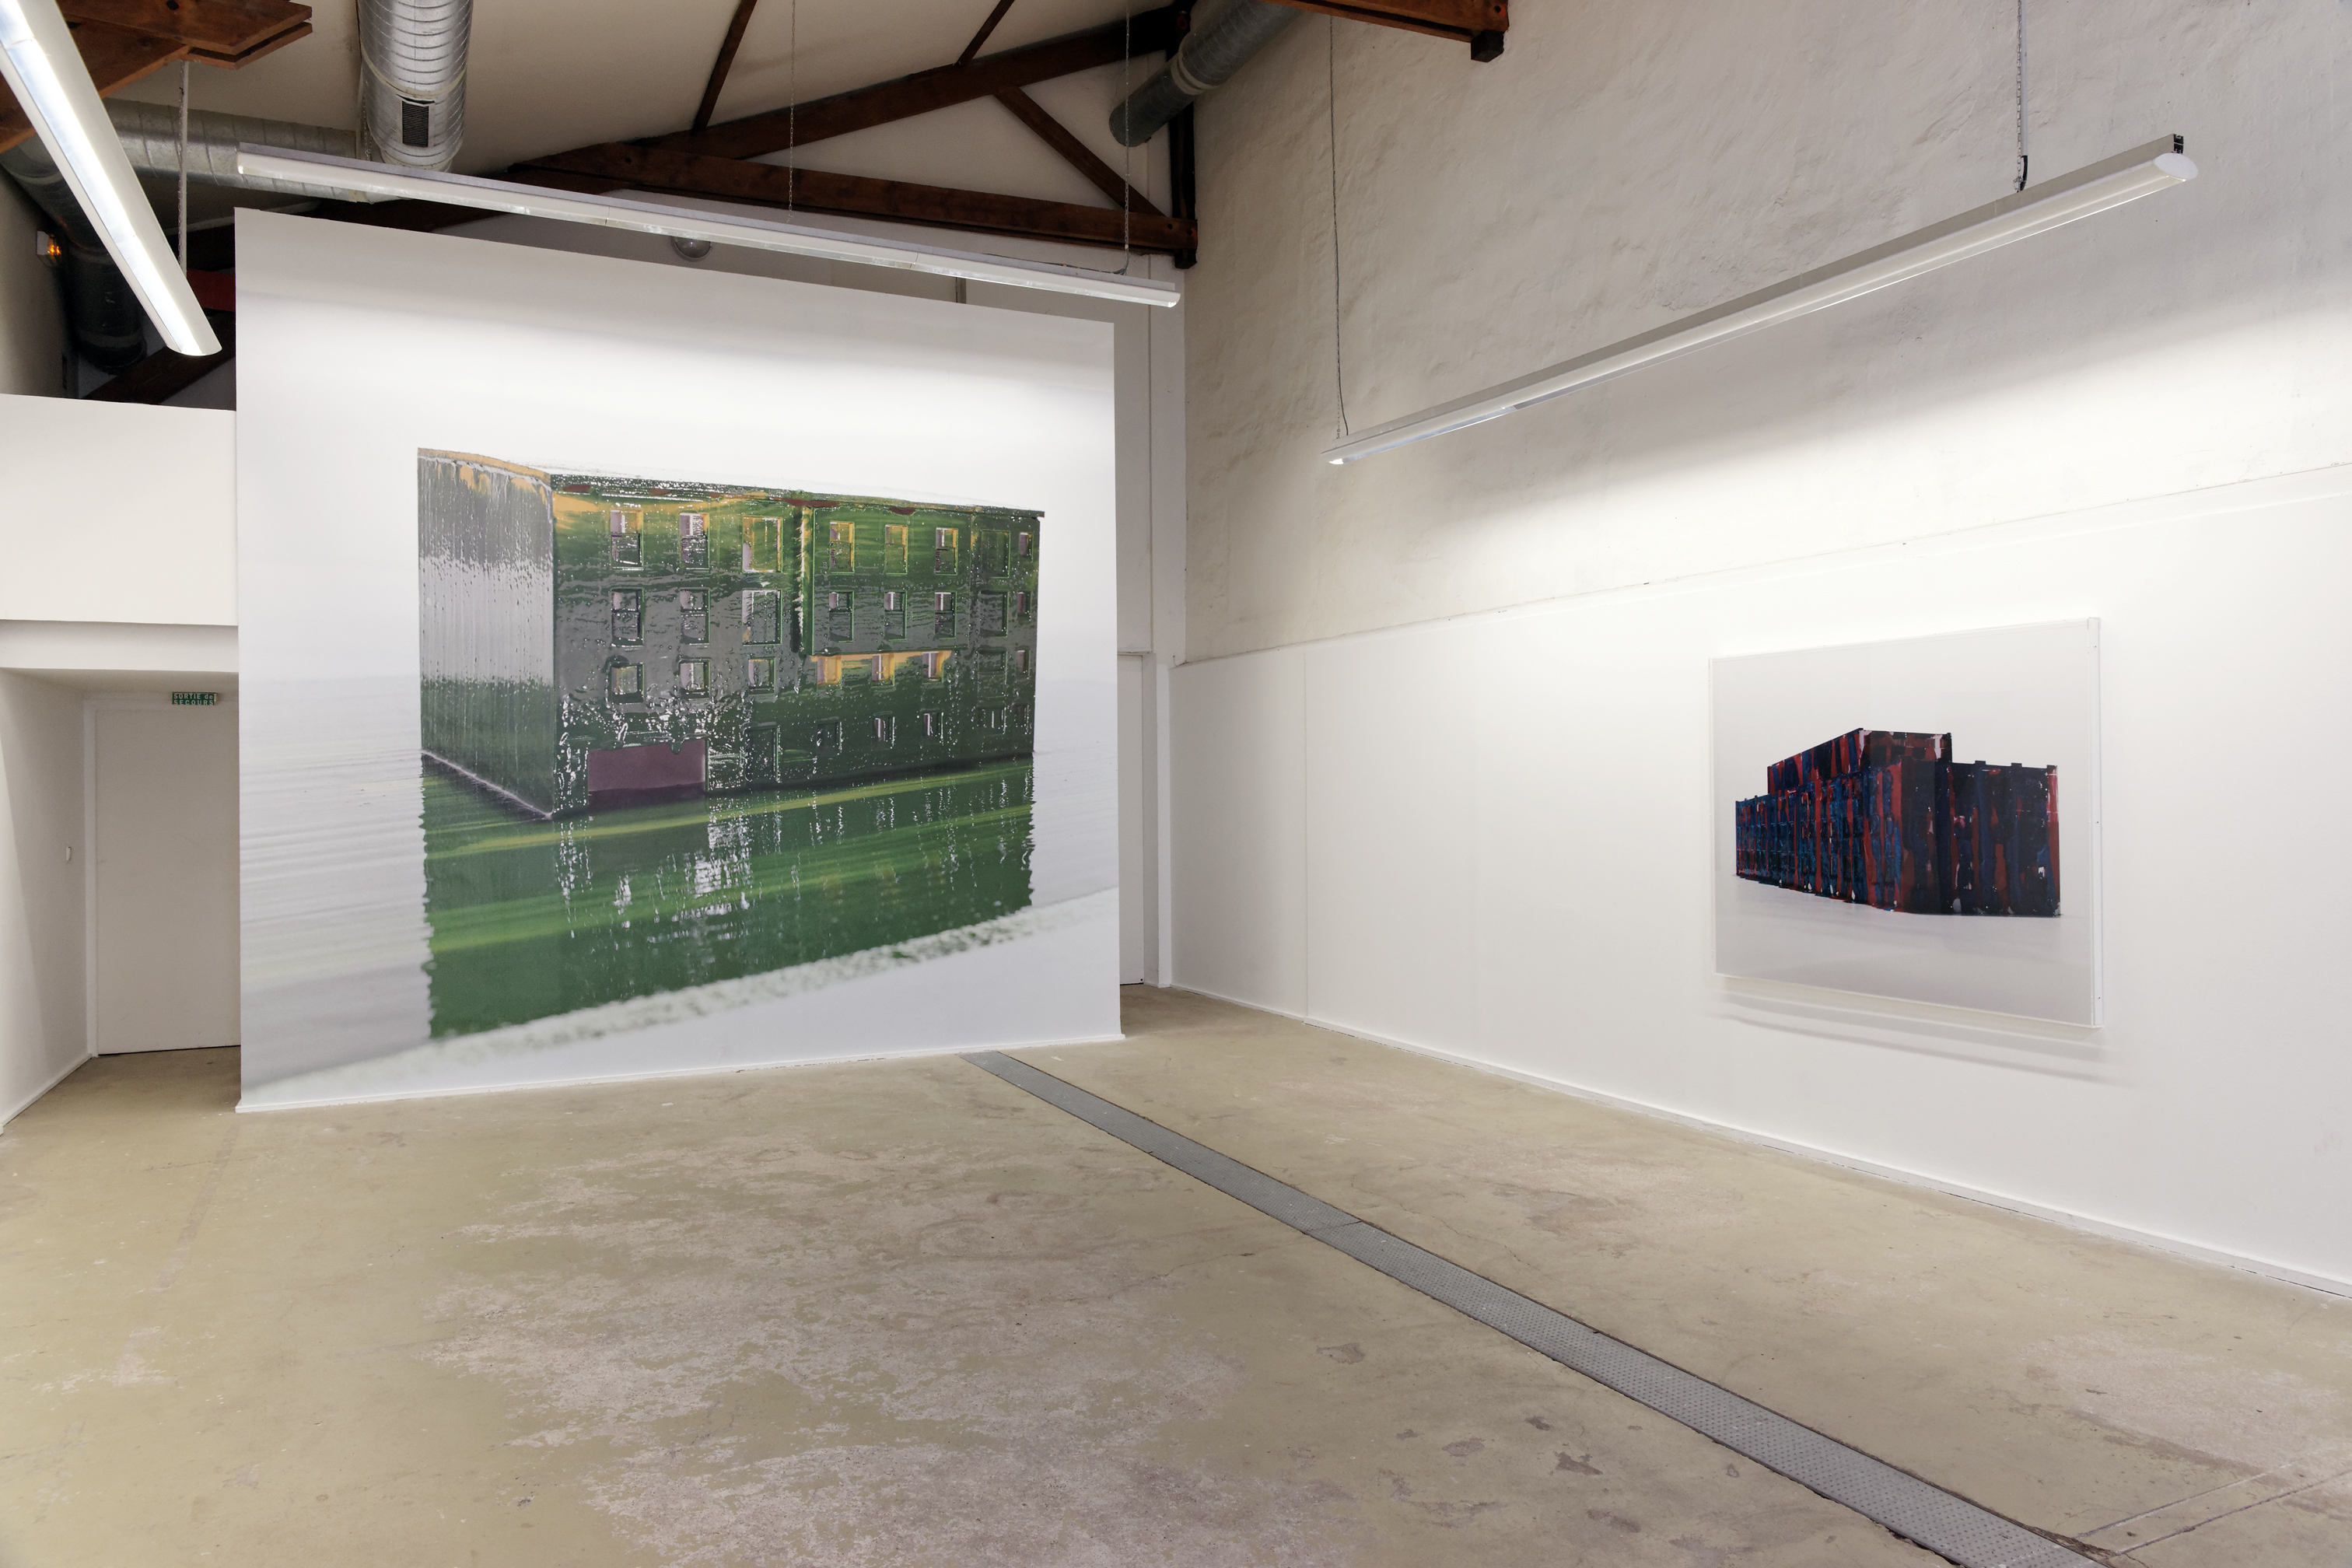 Patrick Tosani - Assemblages - Exhibition view at CPIF - France